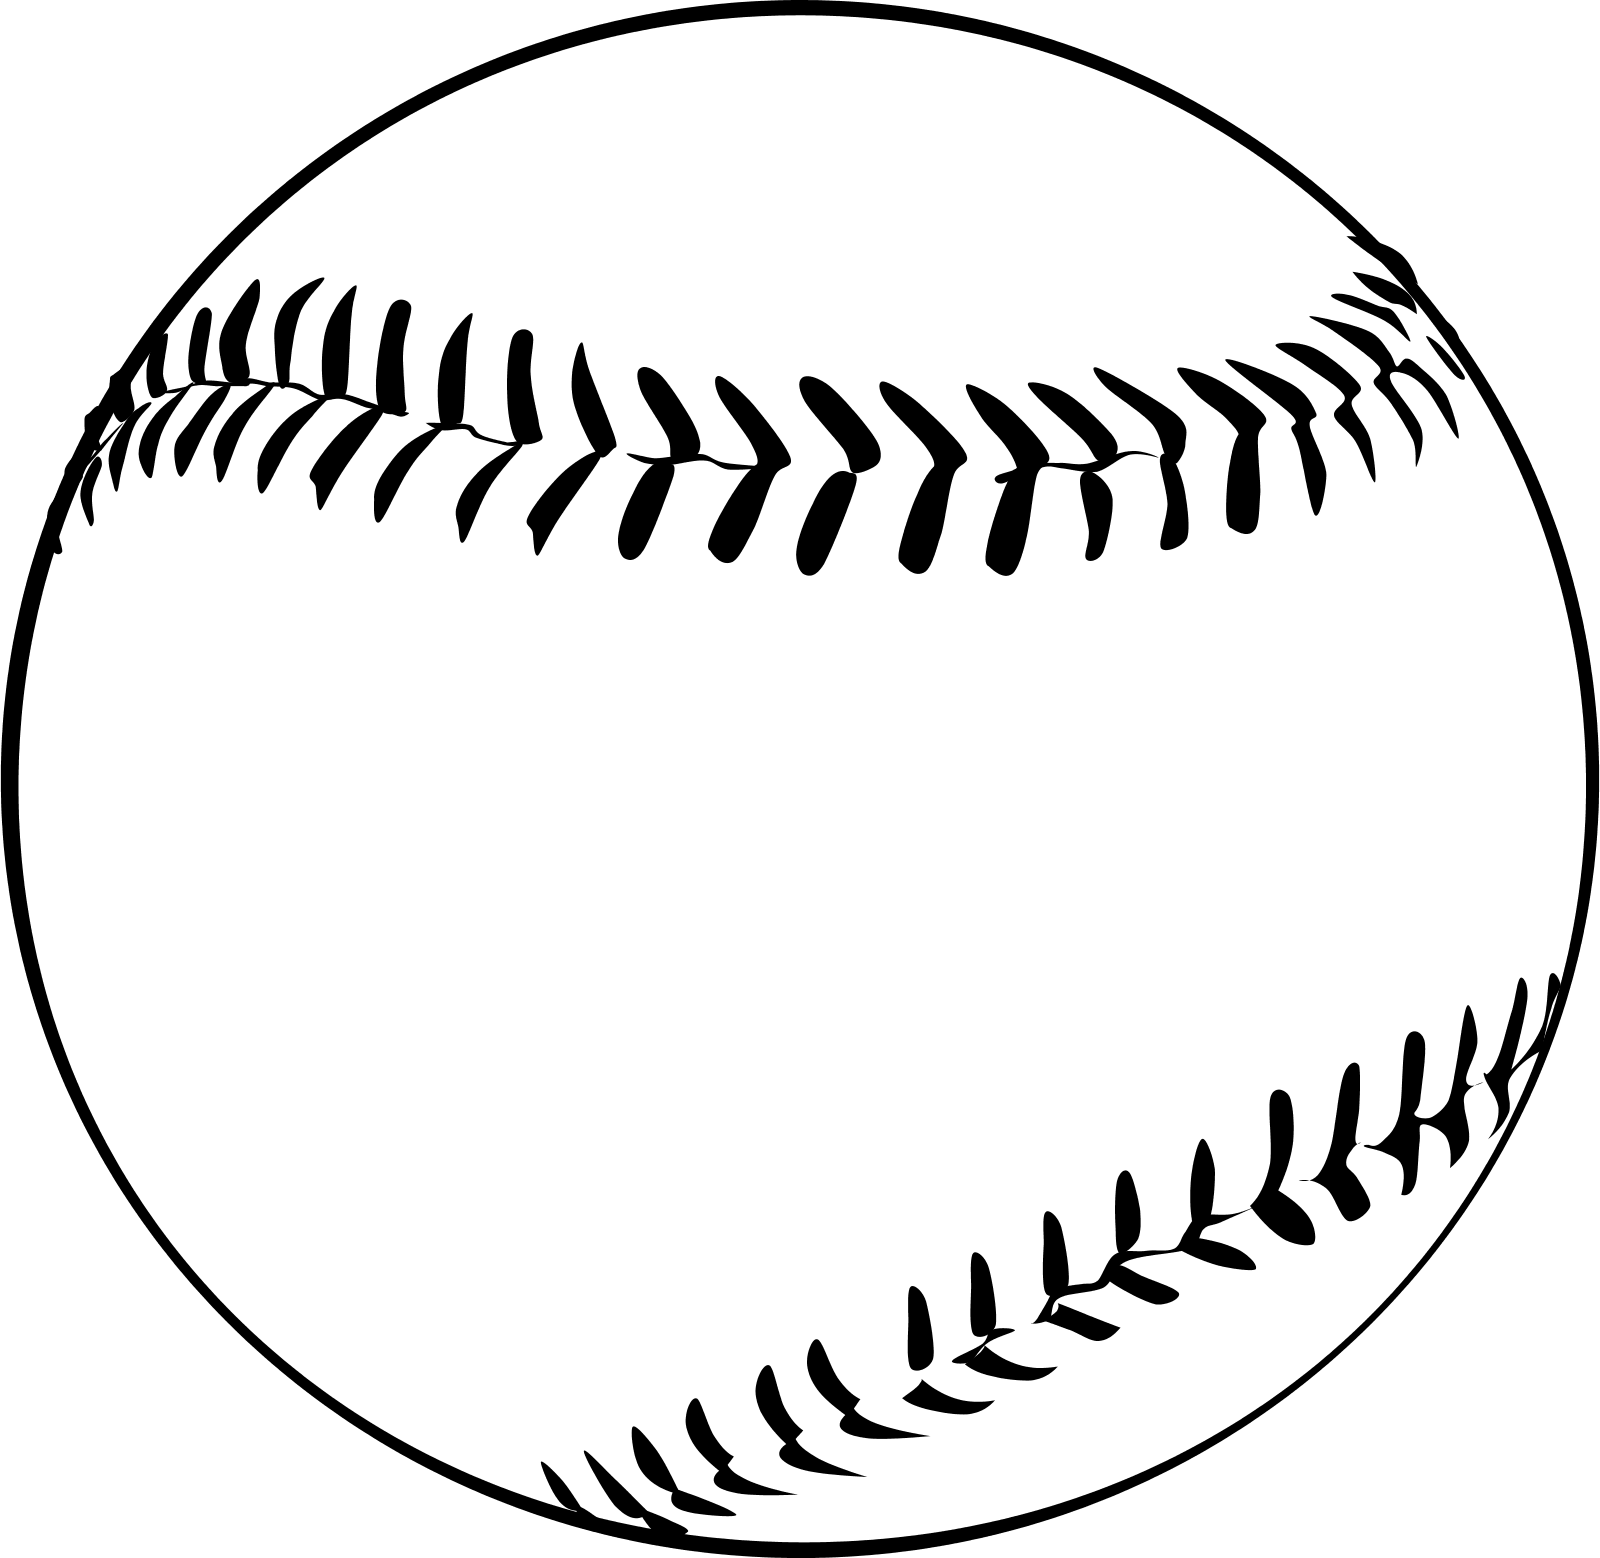 Baseball free clipart svg freeuse Baseball Clipart Black And White | Letters Format svg freeuse